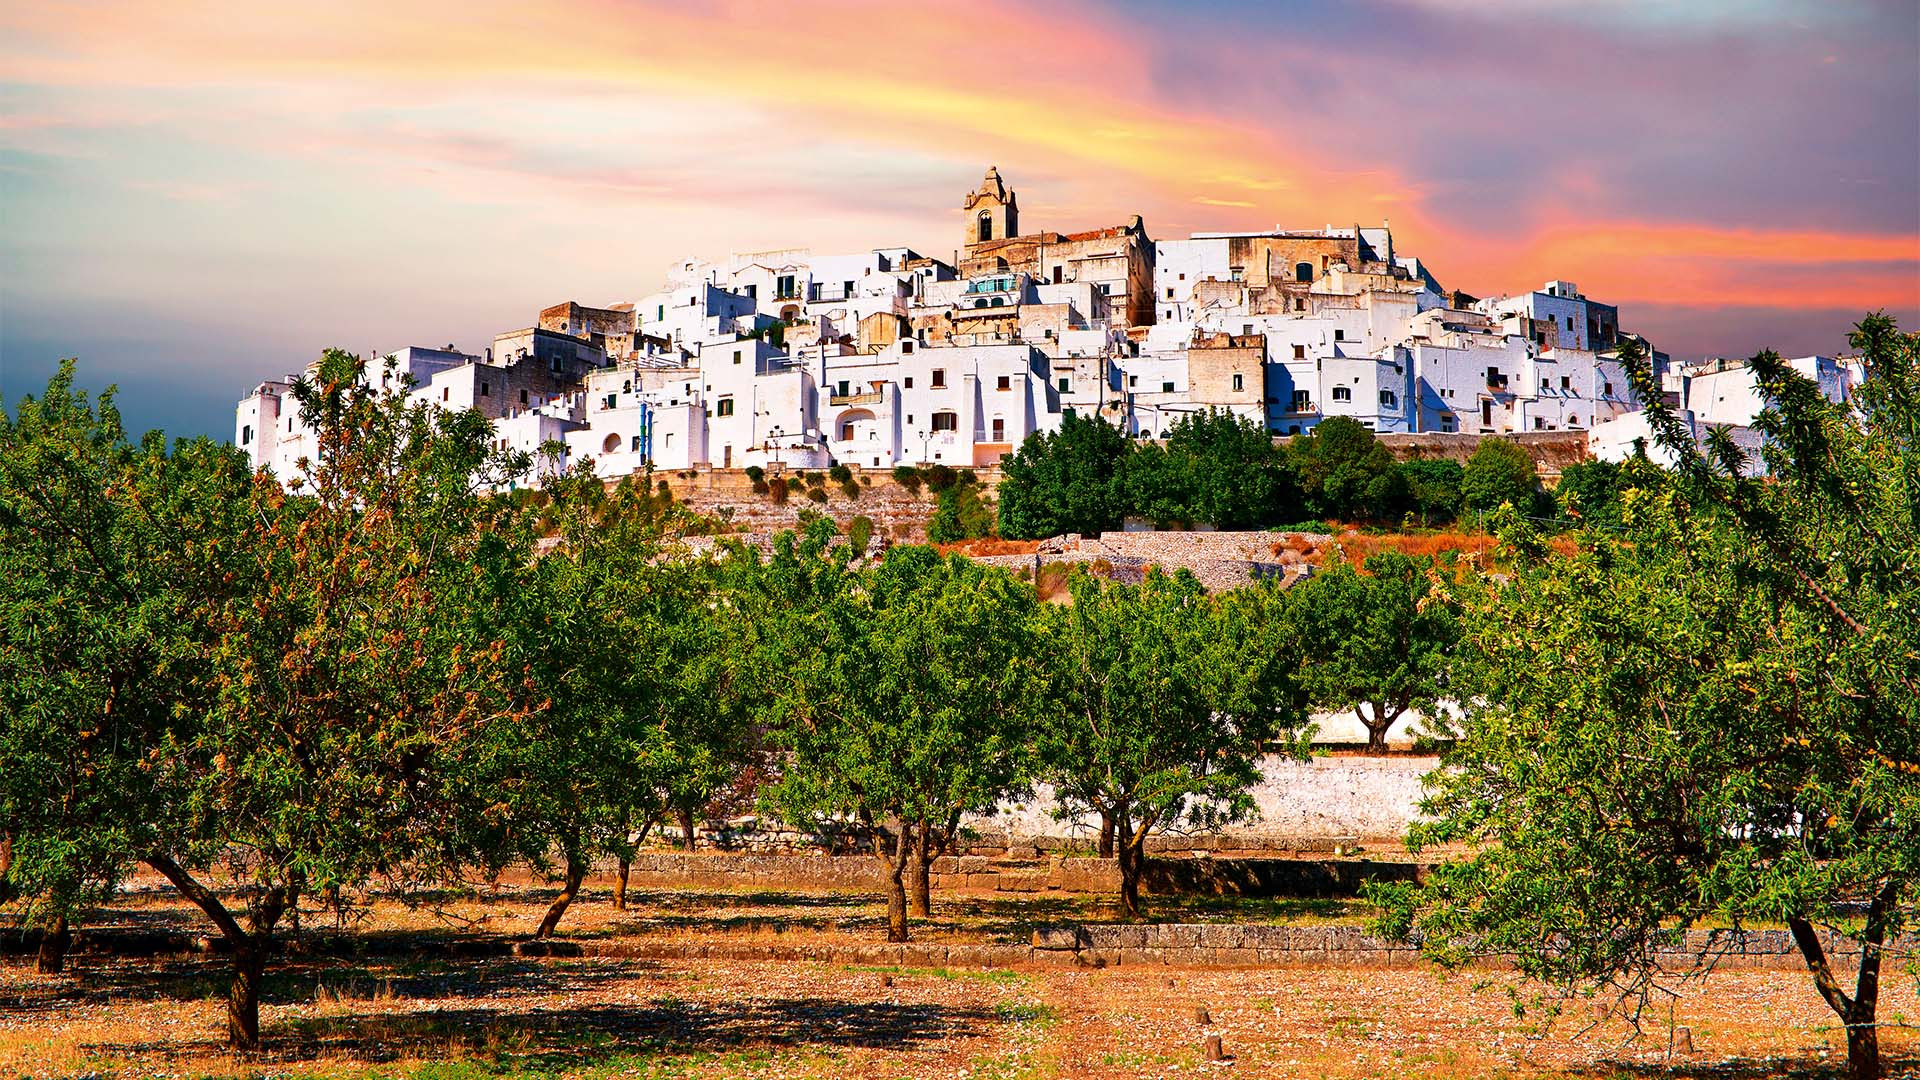 Medieval fortified town of Ostuni, The White Town, Puglia, Italy